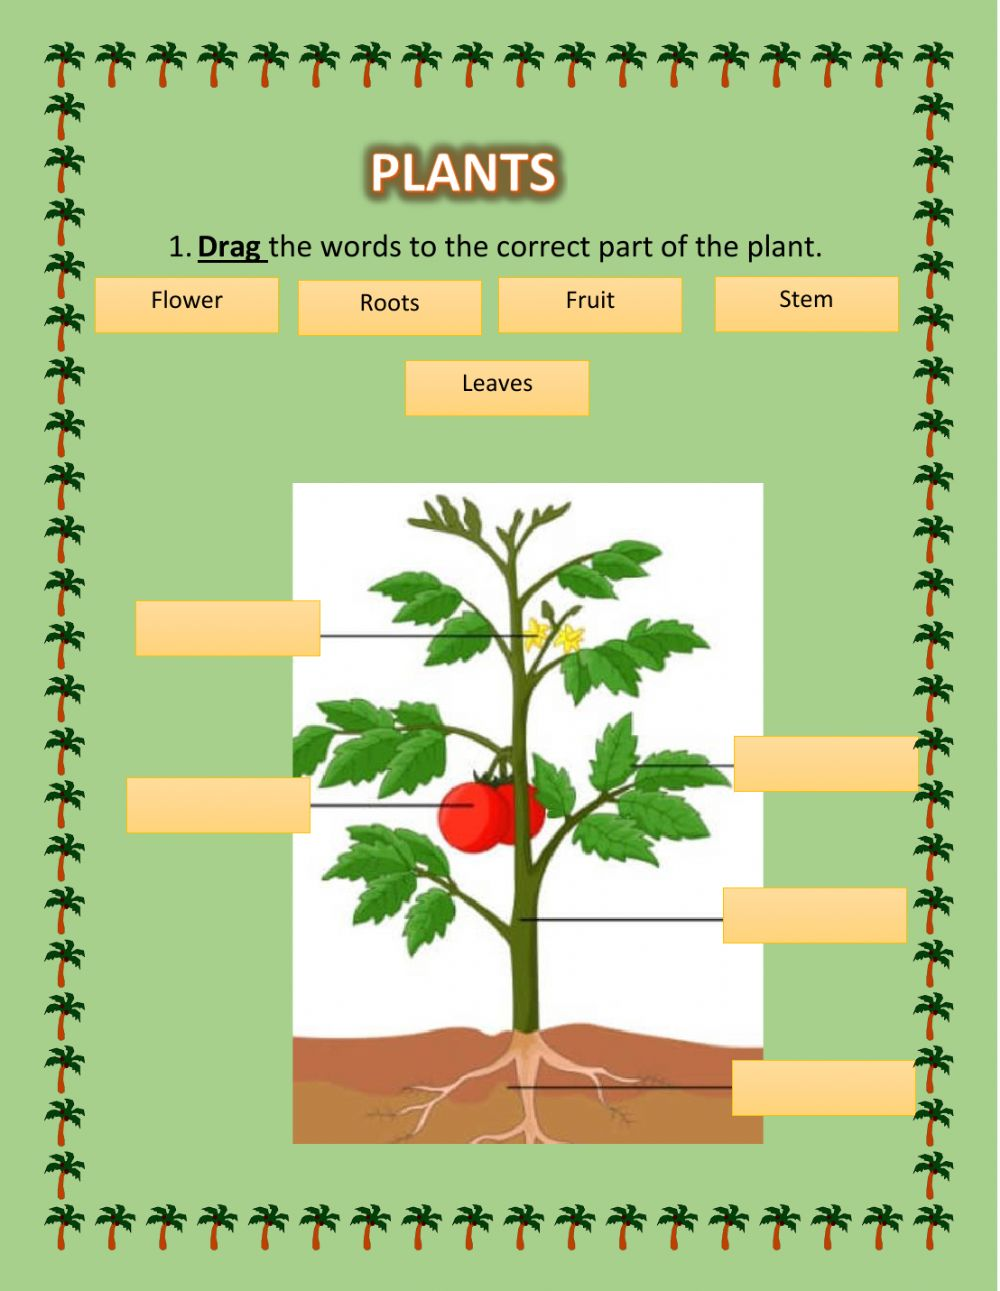 Parts of the plant interactive exercise for primero